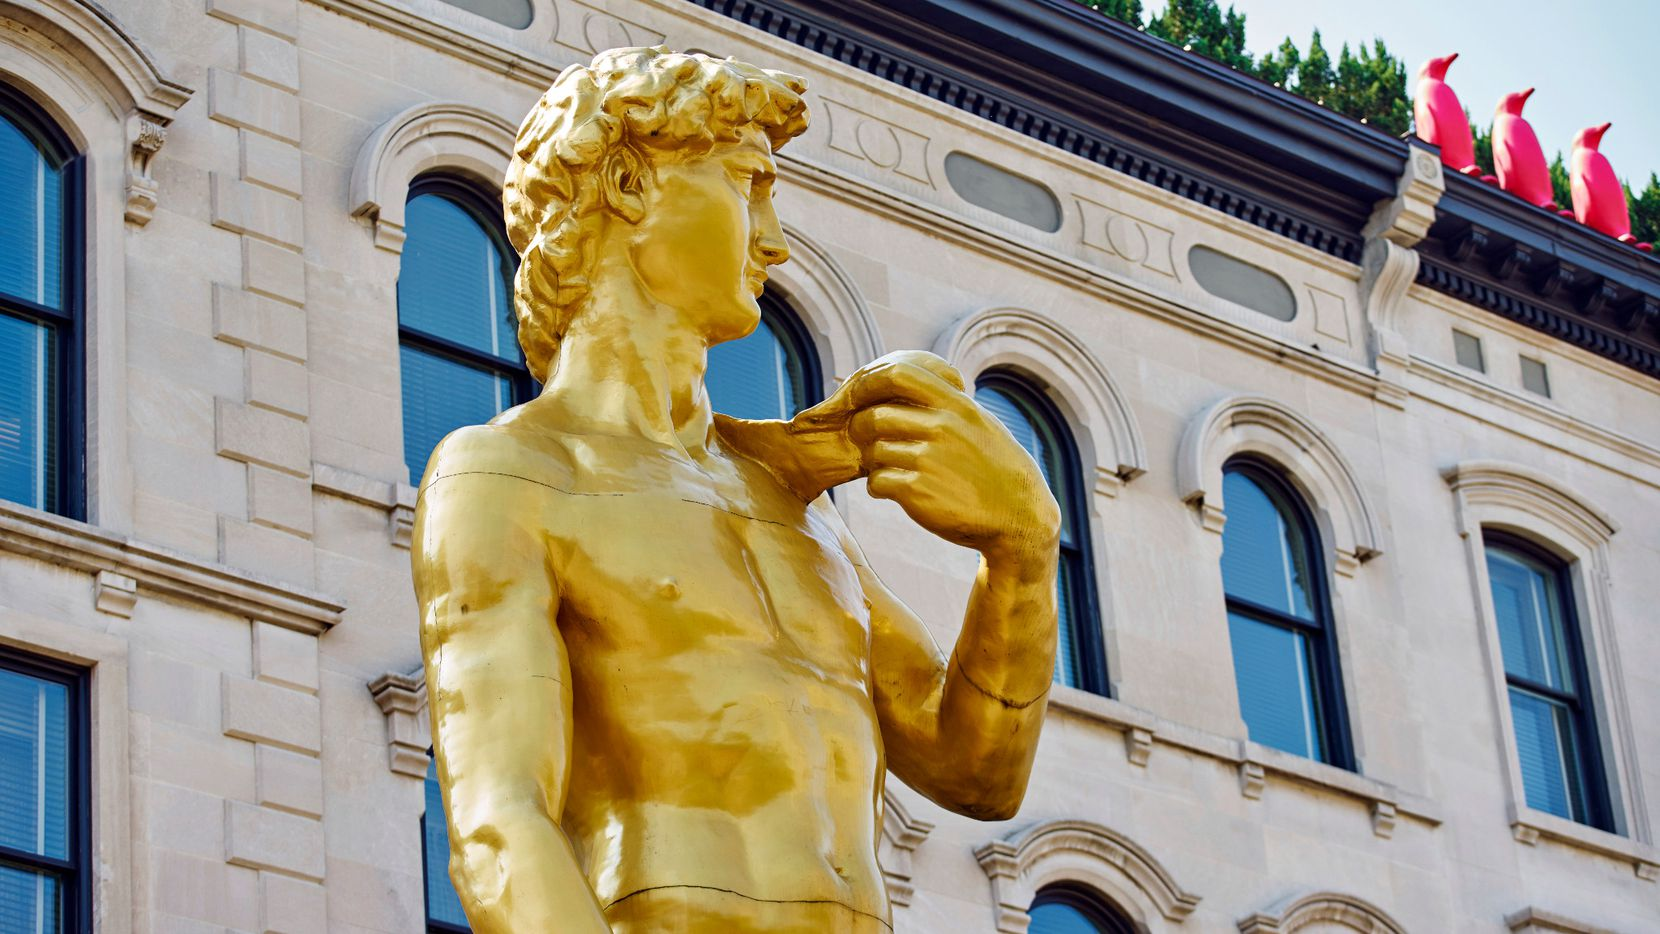 Conceptual artist Serkan Özkaya made his double-size golden replica of Michelangelo's David for the 9th International Istanbul Biennial in 2005. Now, the 30-foot-tall statue sits outside the 21c Museum Hotel in Louisville.